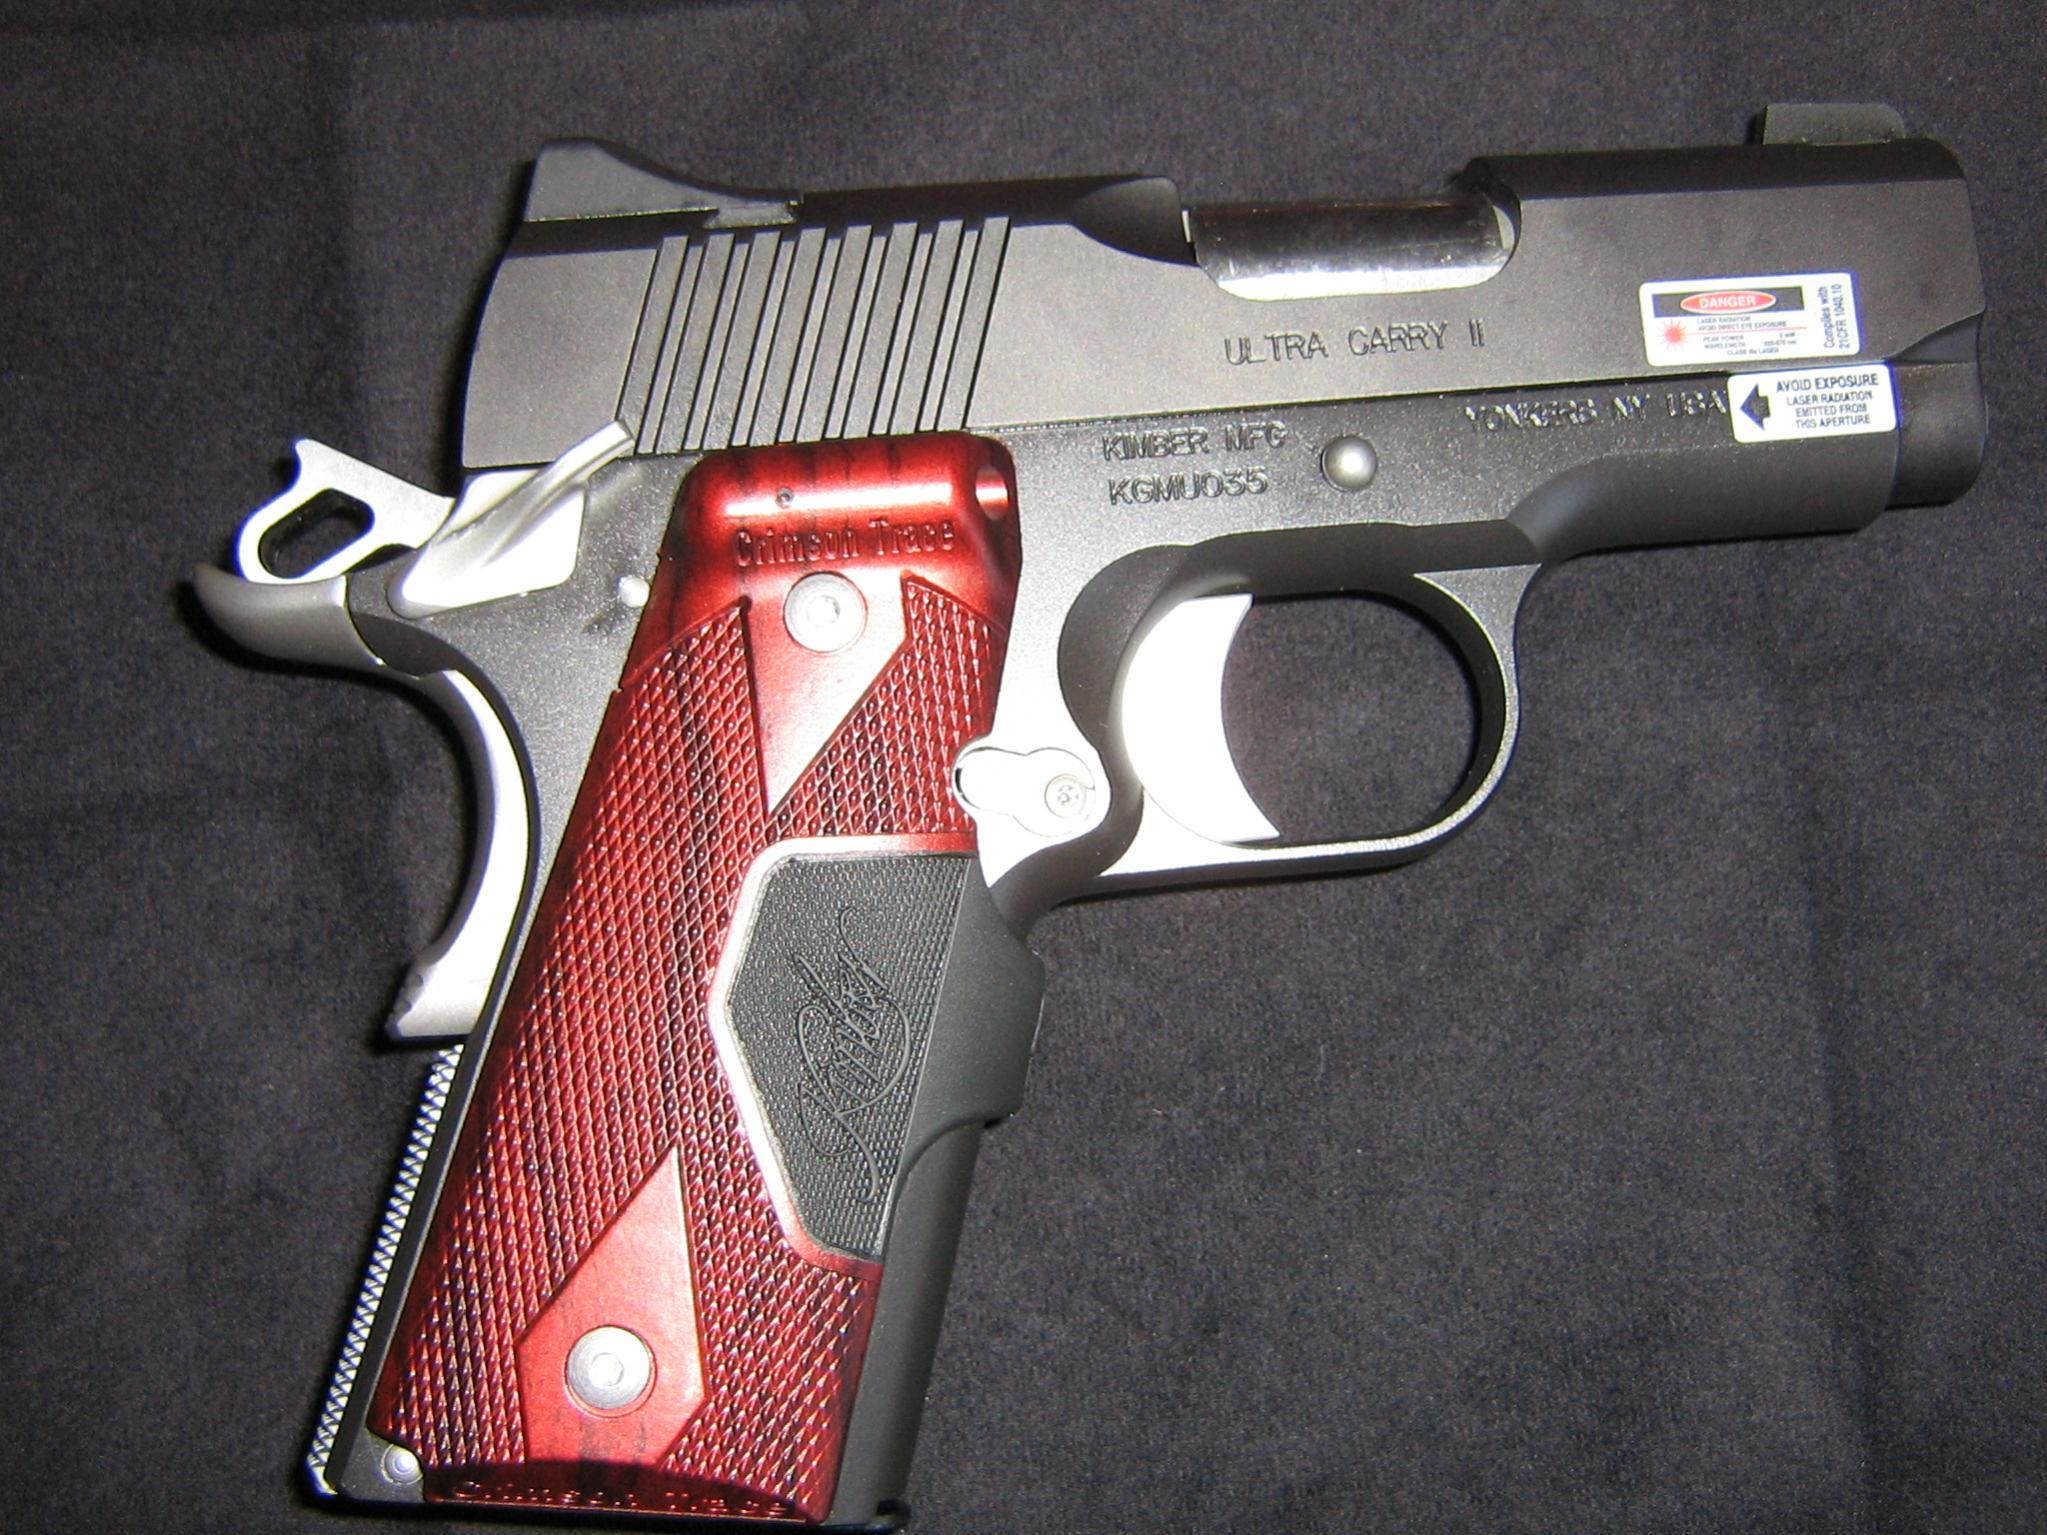 Pictures of my Kimber Ultra Carry II LG-img_0436.jpg